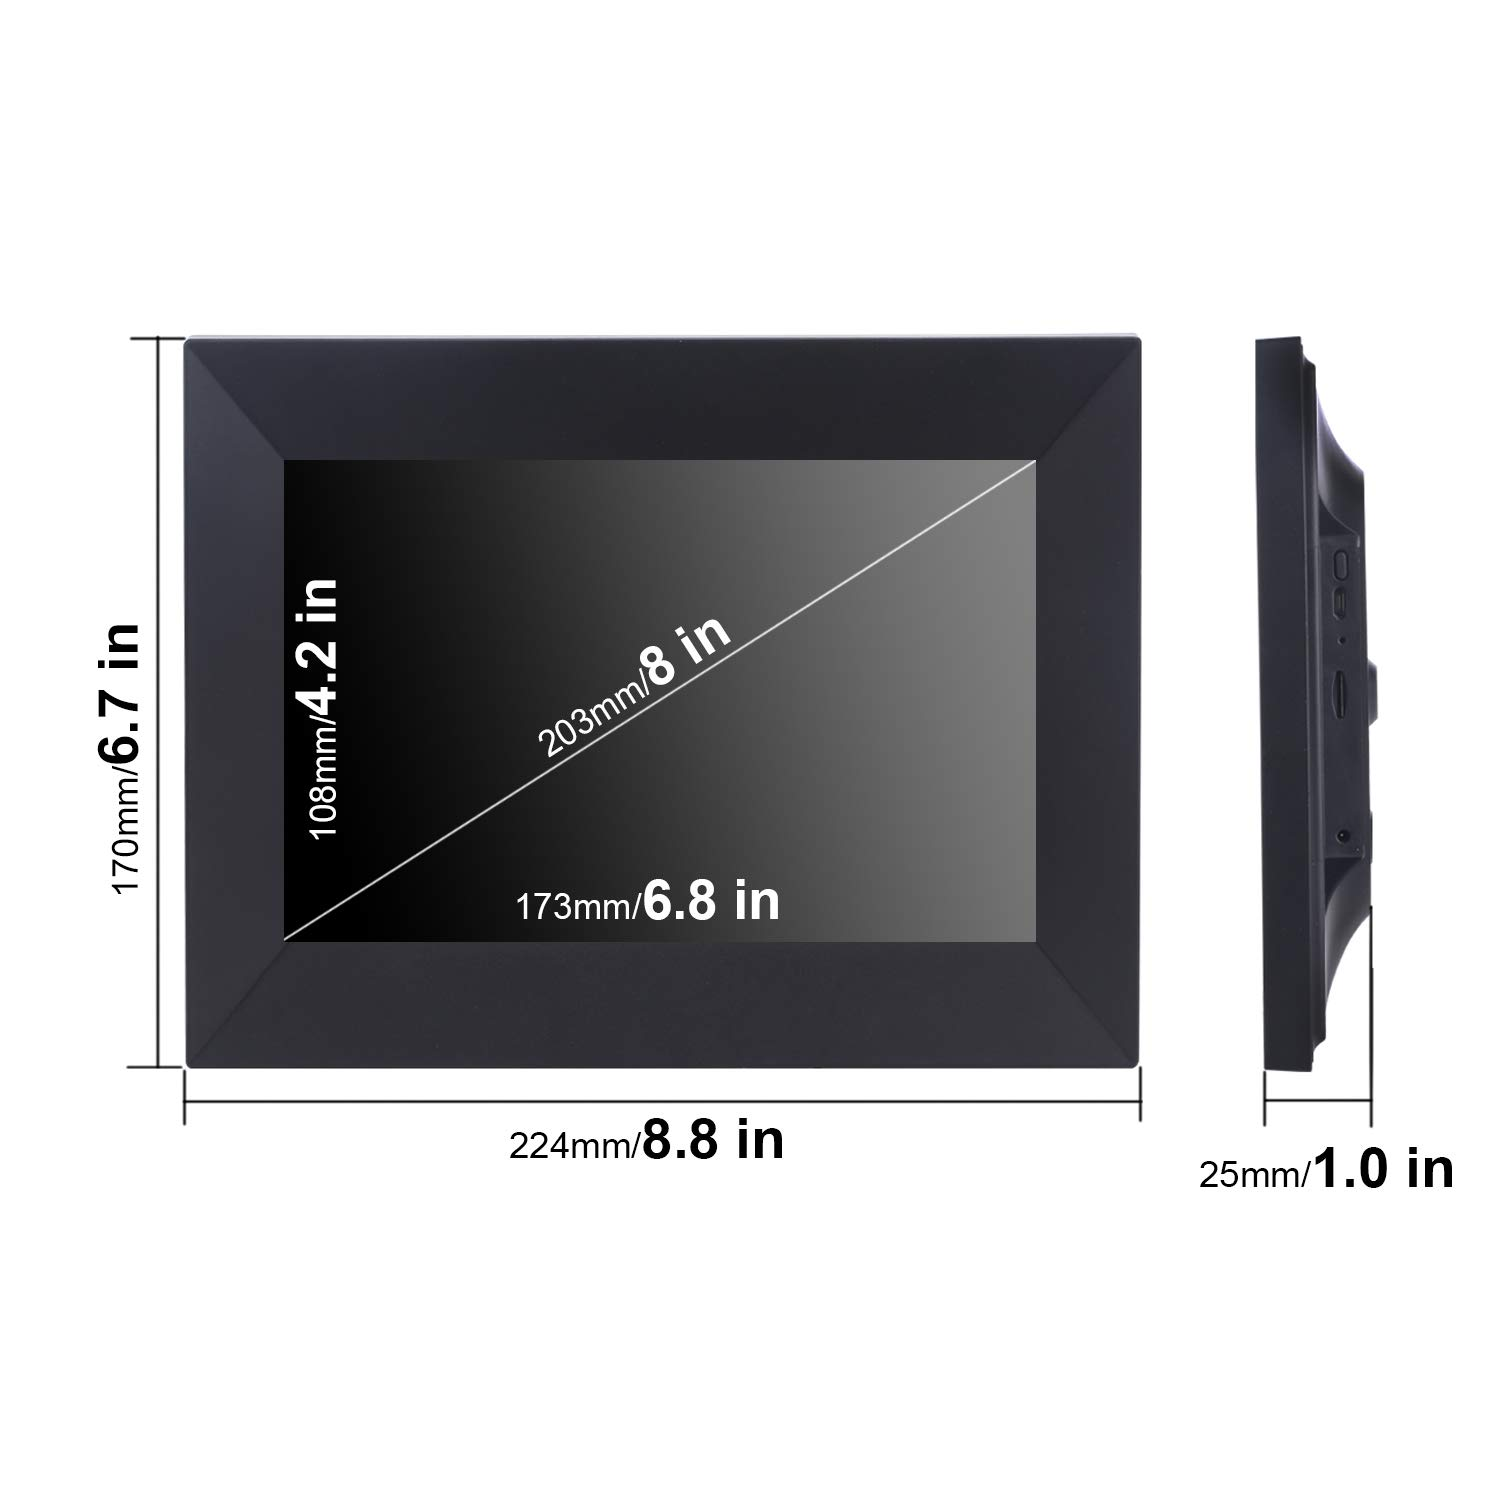 Dhwazz 8 Inch WiFi Digital Photo Frame, IPS Electronic Picture Frame with LCD Touch Screen, 8GB Internal Storage, Wall-Mountable, Display and Share Photos Instantly via Mobile APP by Dhwazz (Image #7)